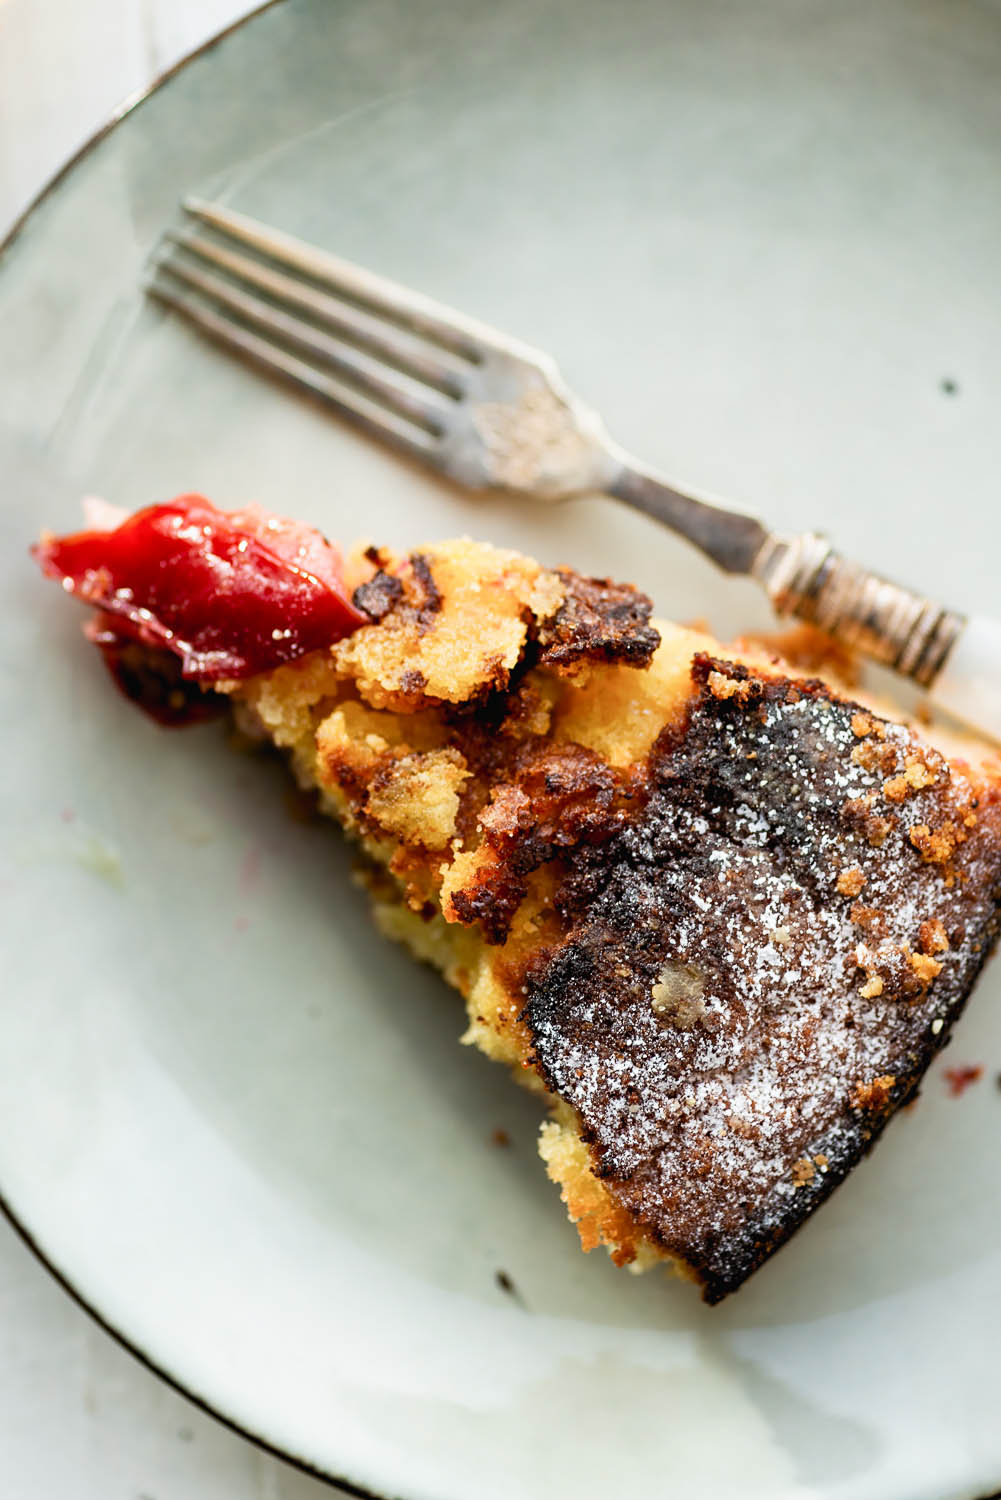 The famous New York Times Plum Torte recipe. First published in the New York Times in 1983, the recipe was so popular that the newspaper published it every year until 1995